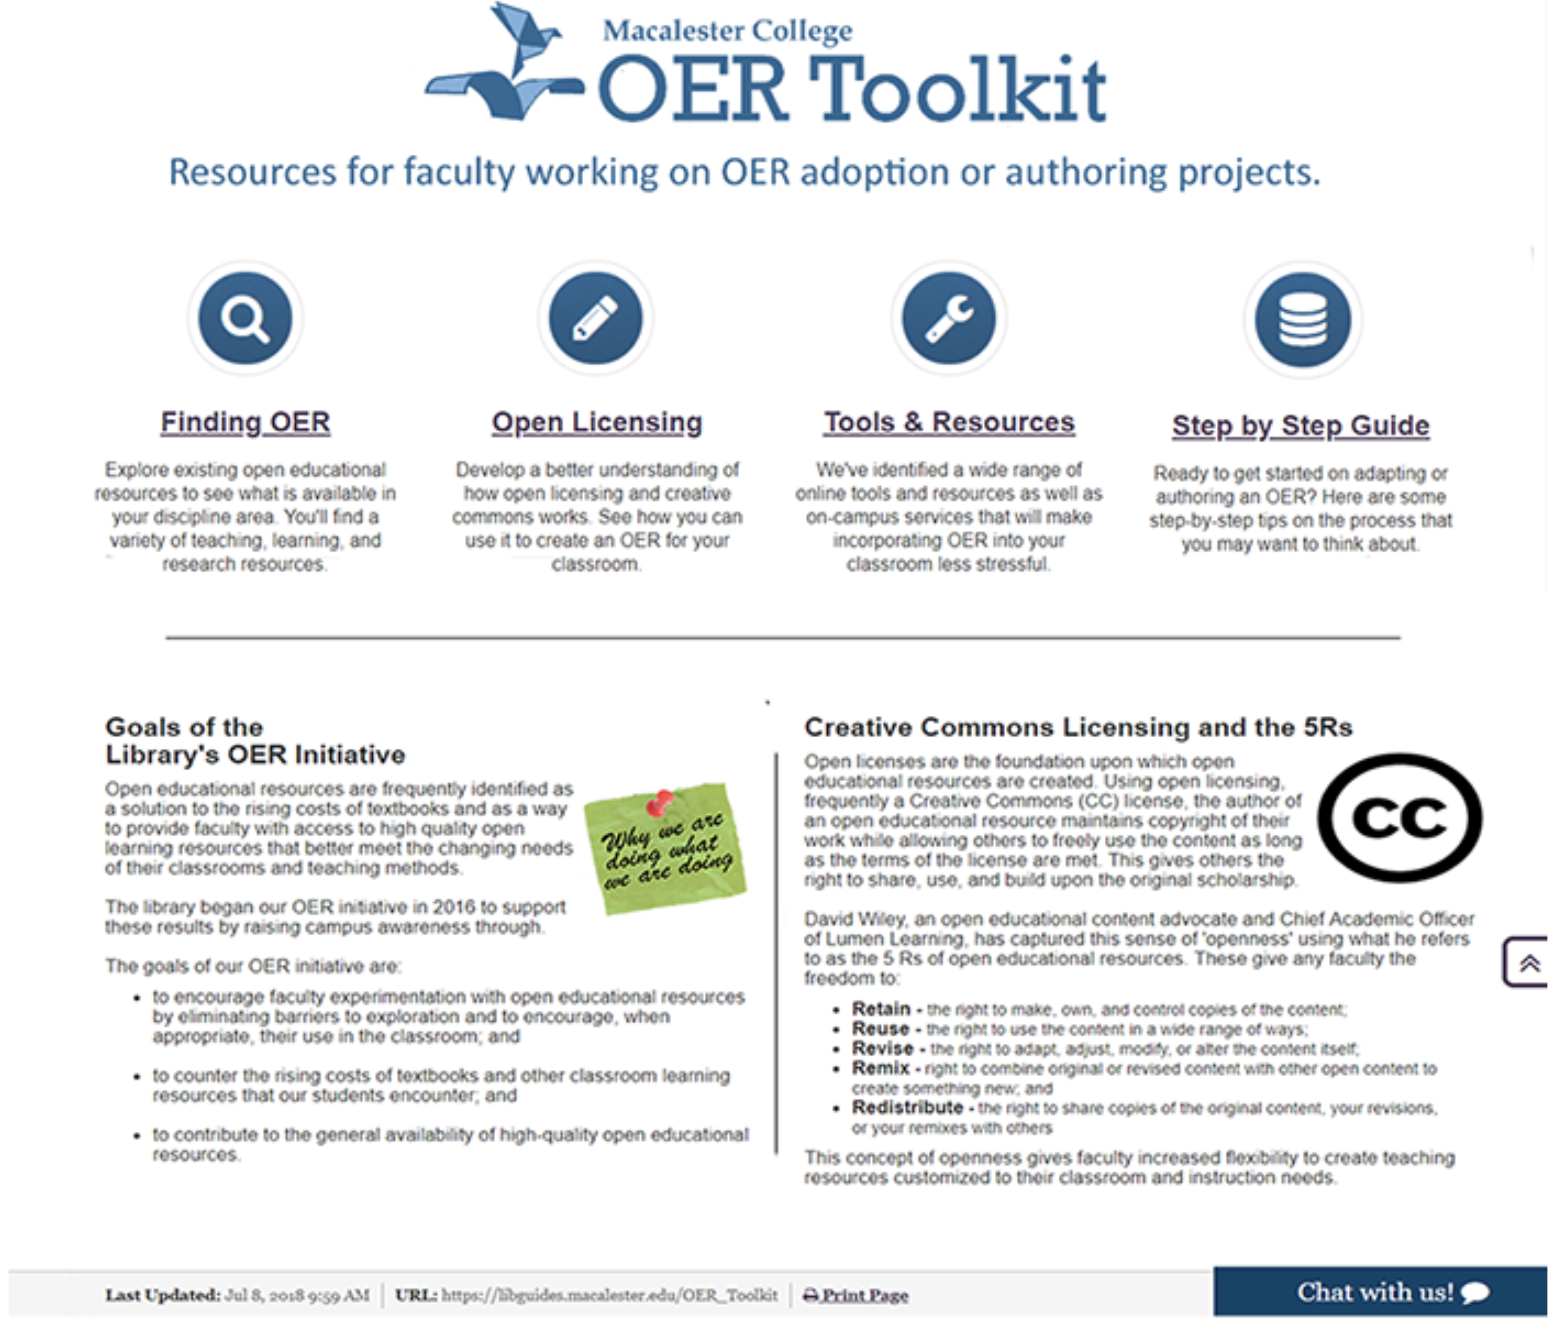 The OER Toolkit website